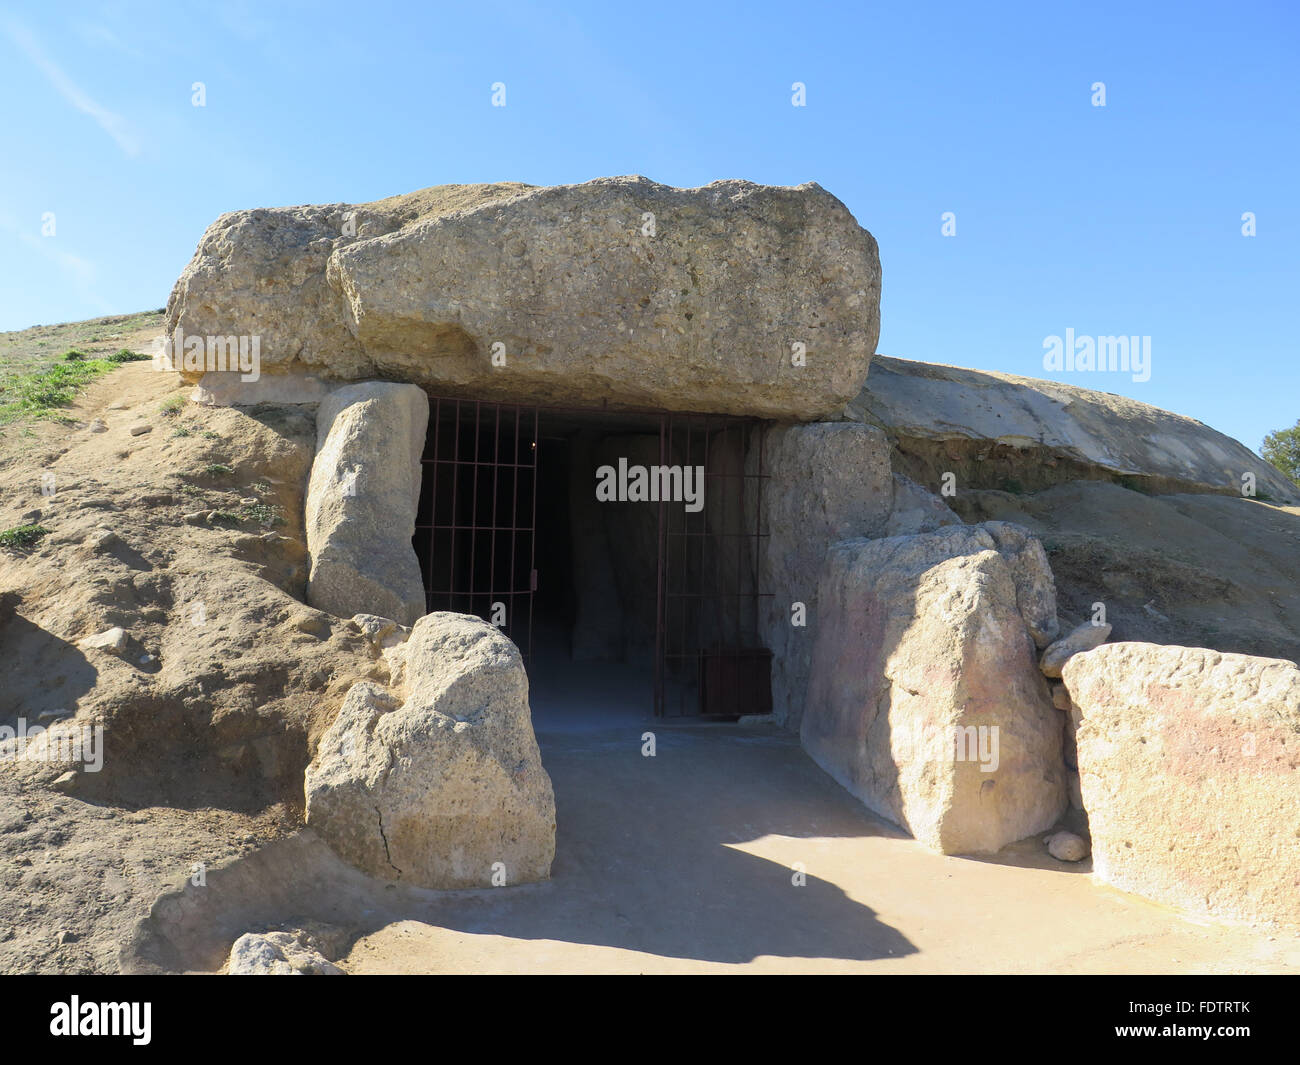 Entrance to ancient Dolmen burial chamber near Antequera, Andalucia - Stock Image